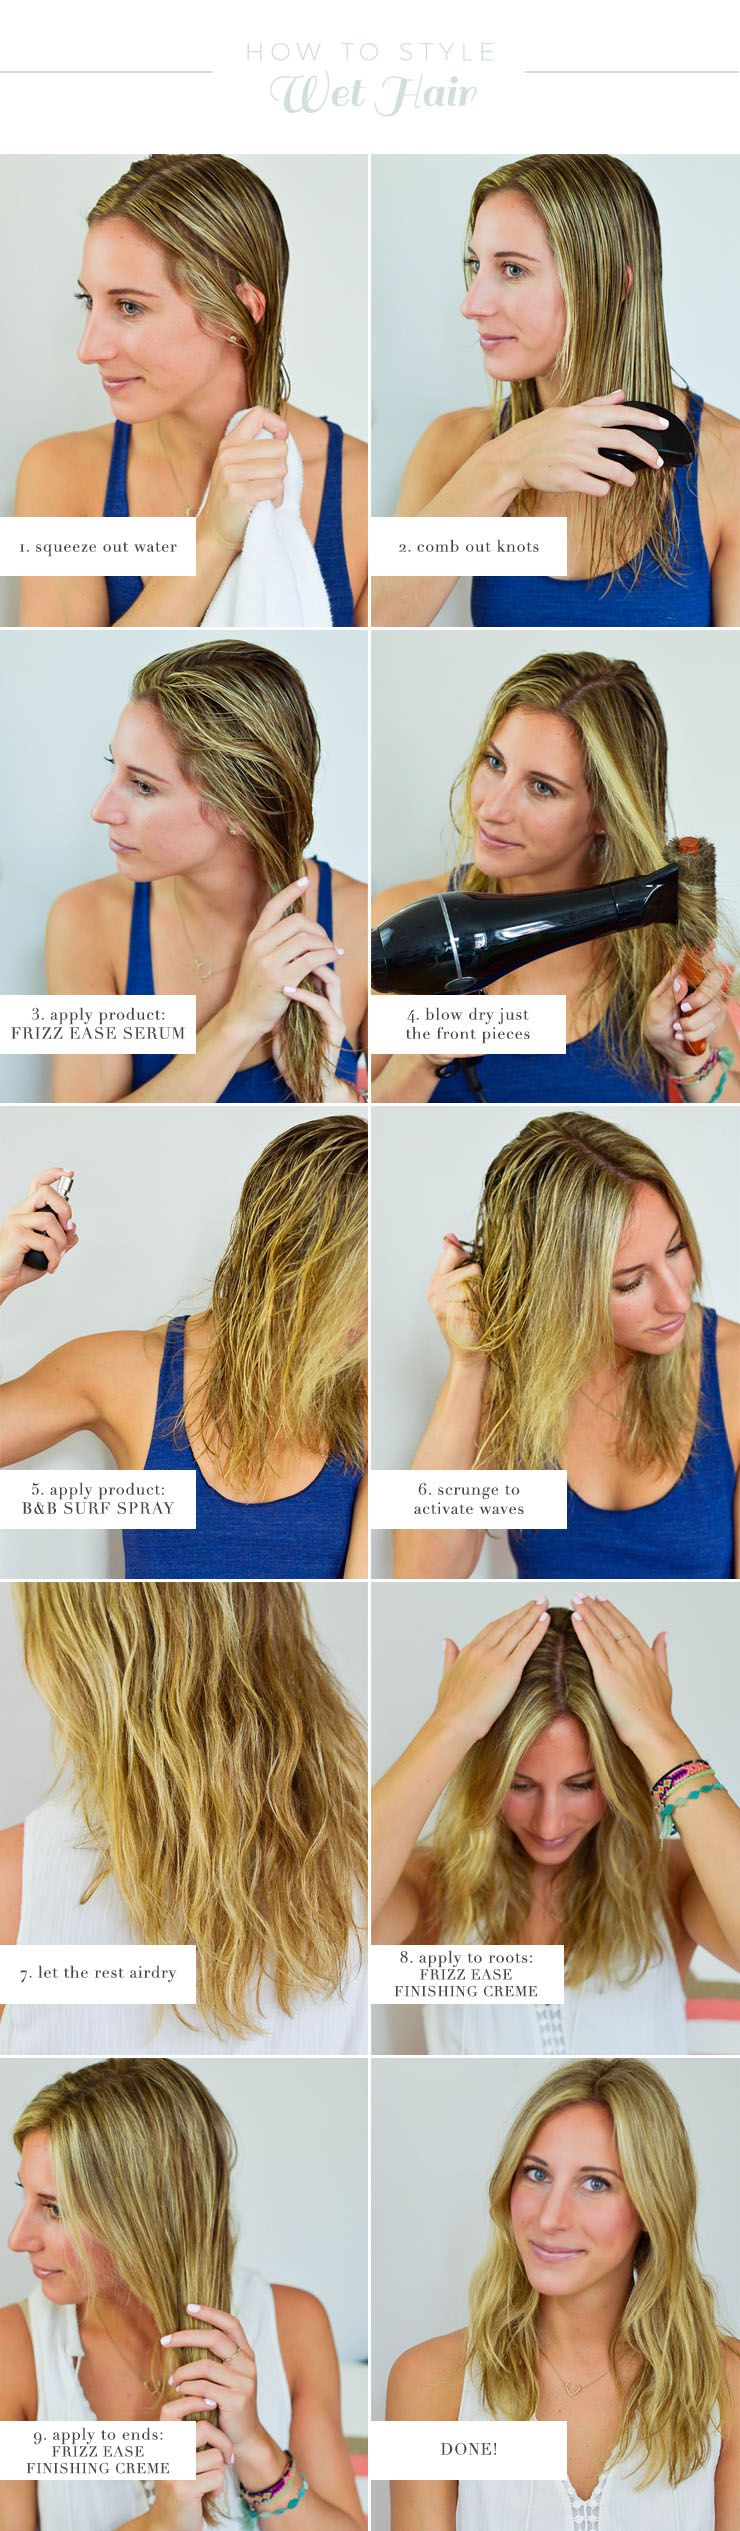 Surprising How To Style Wet Hair So Tired Wet Hair And Beachy Waves Hairstyles For Men Maxibearus